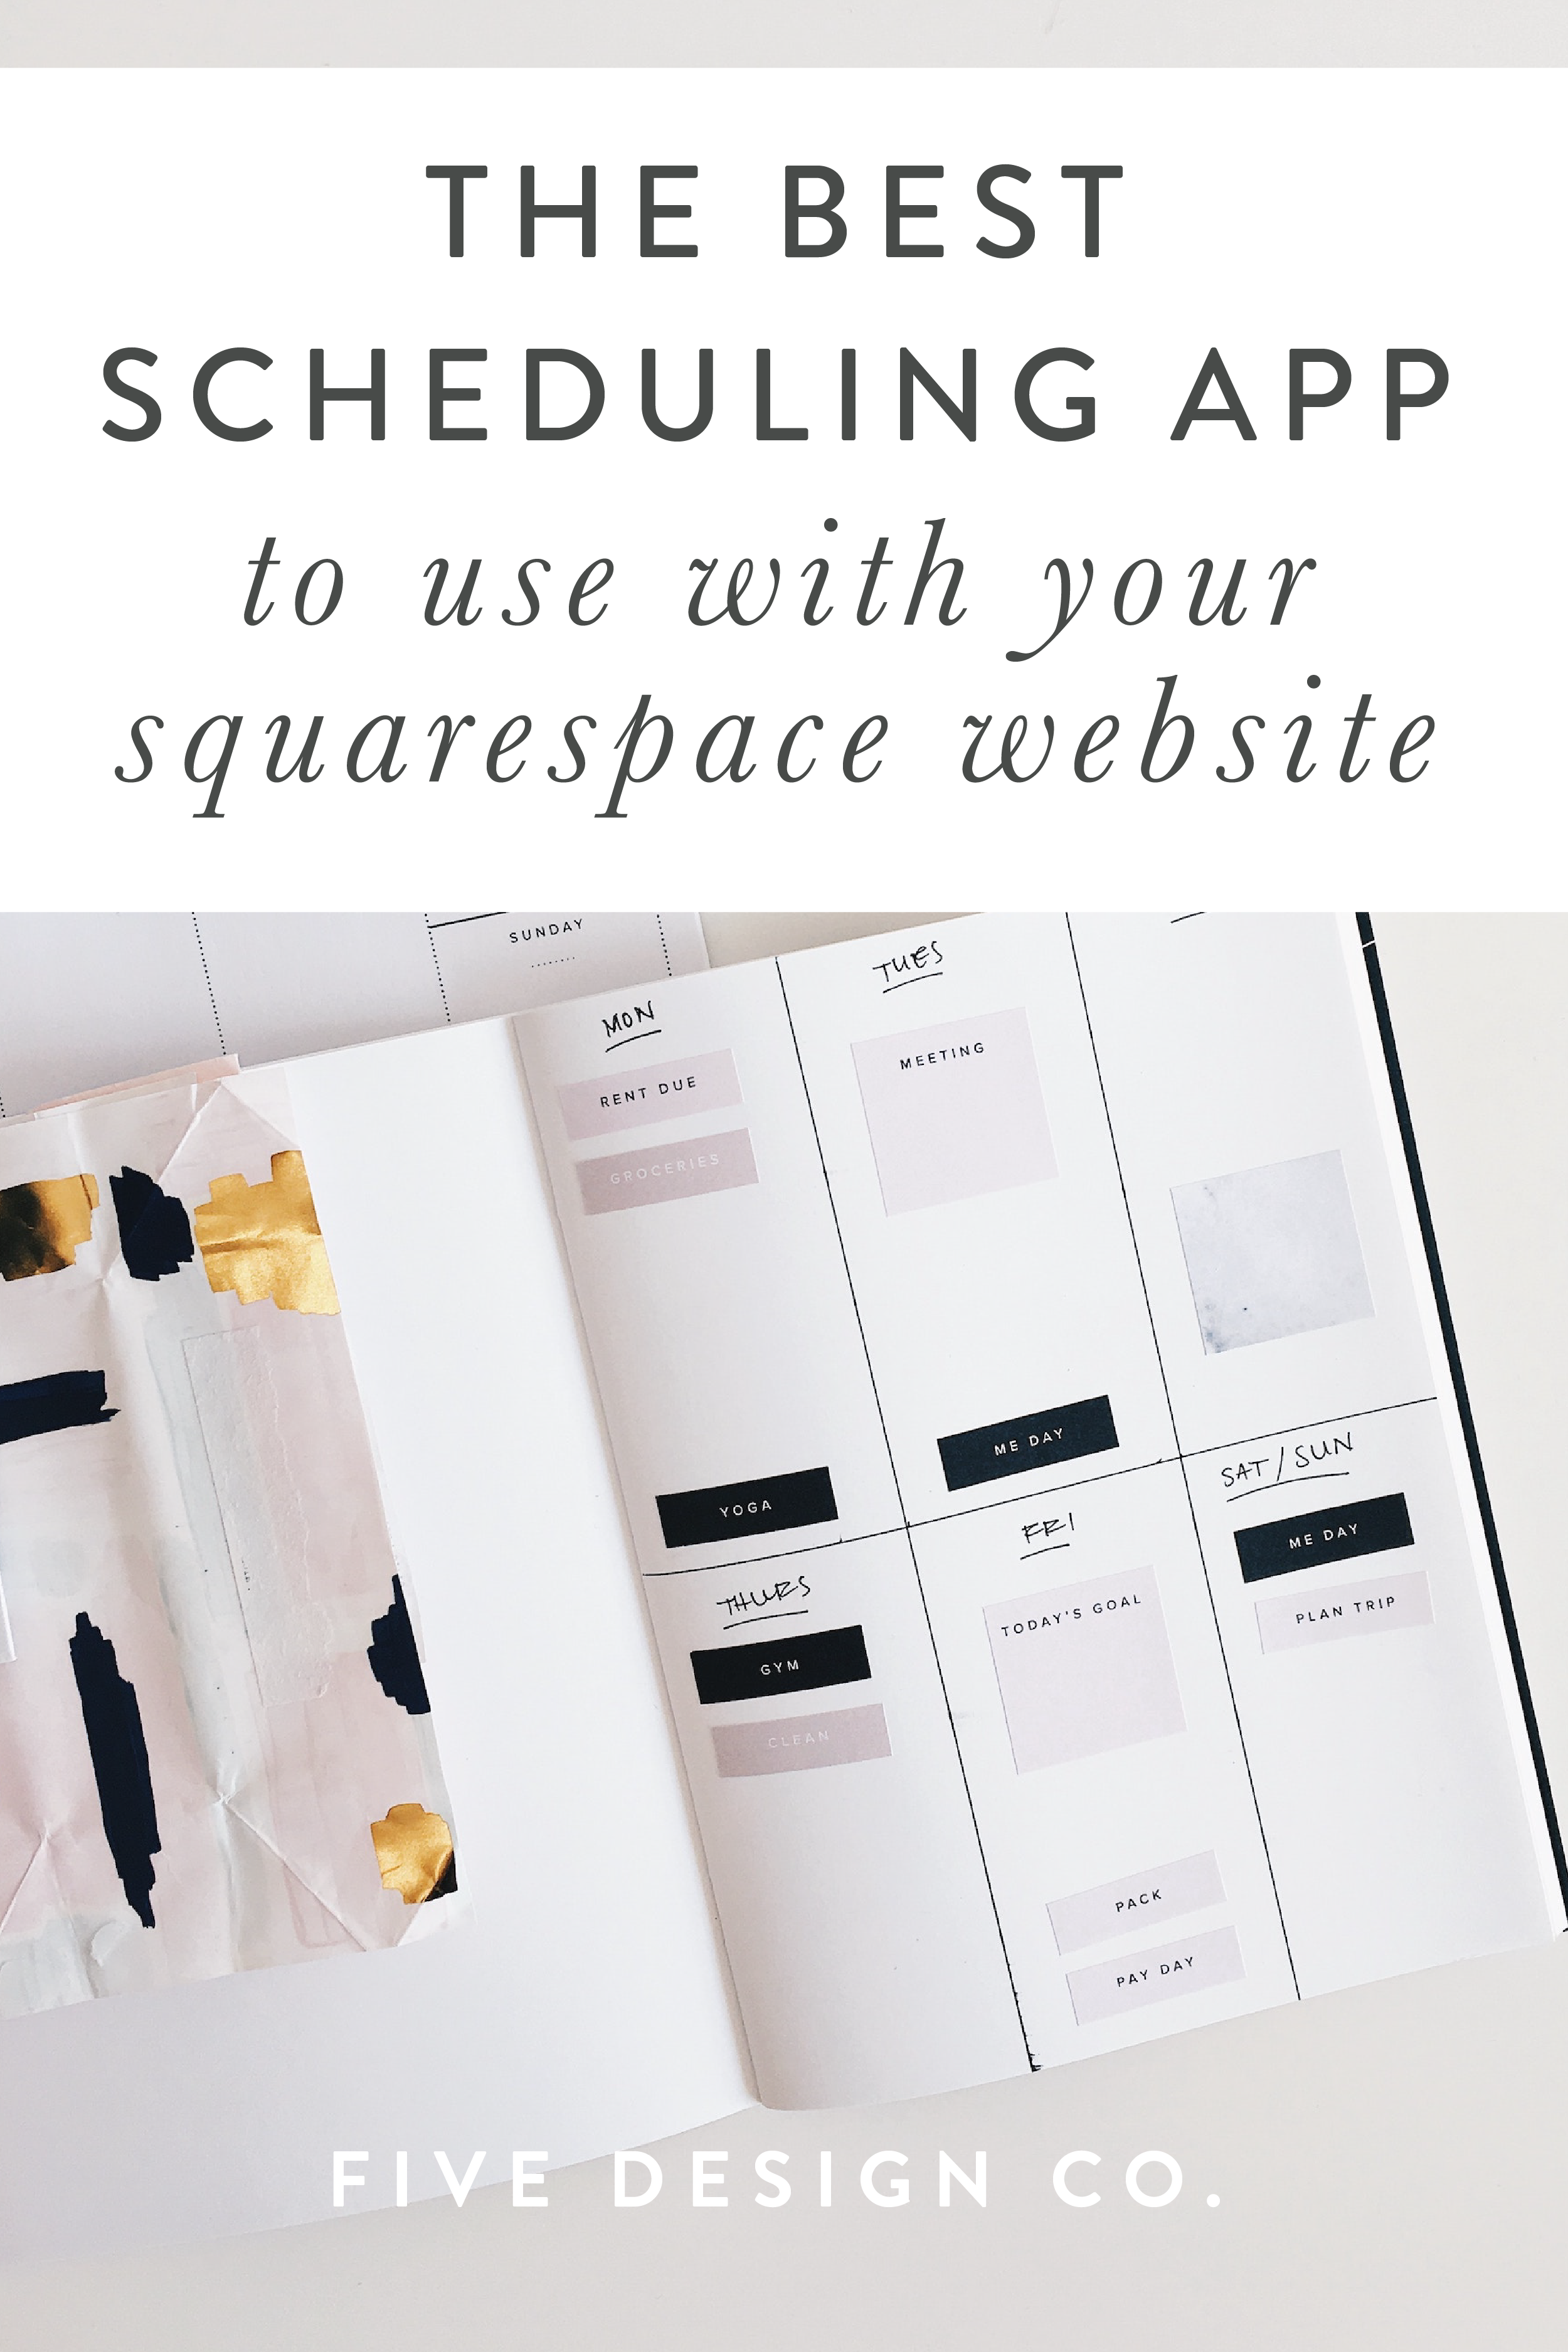 The Best Scheduling App for Your Squarespace Website